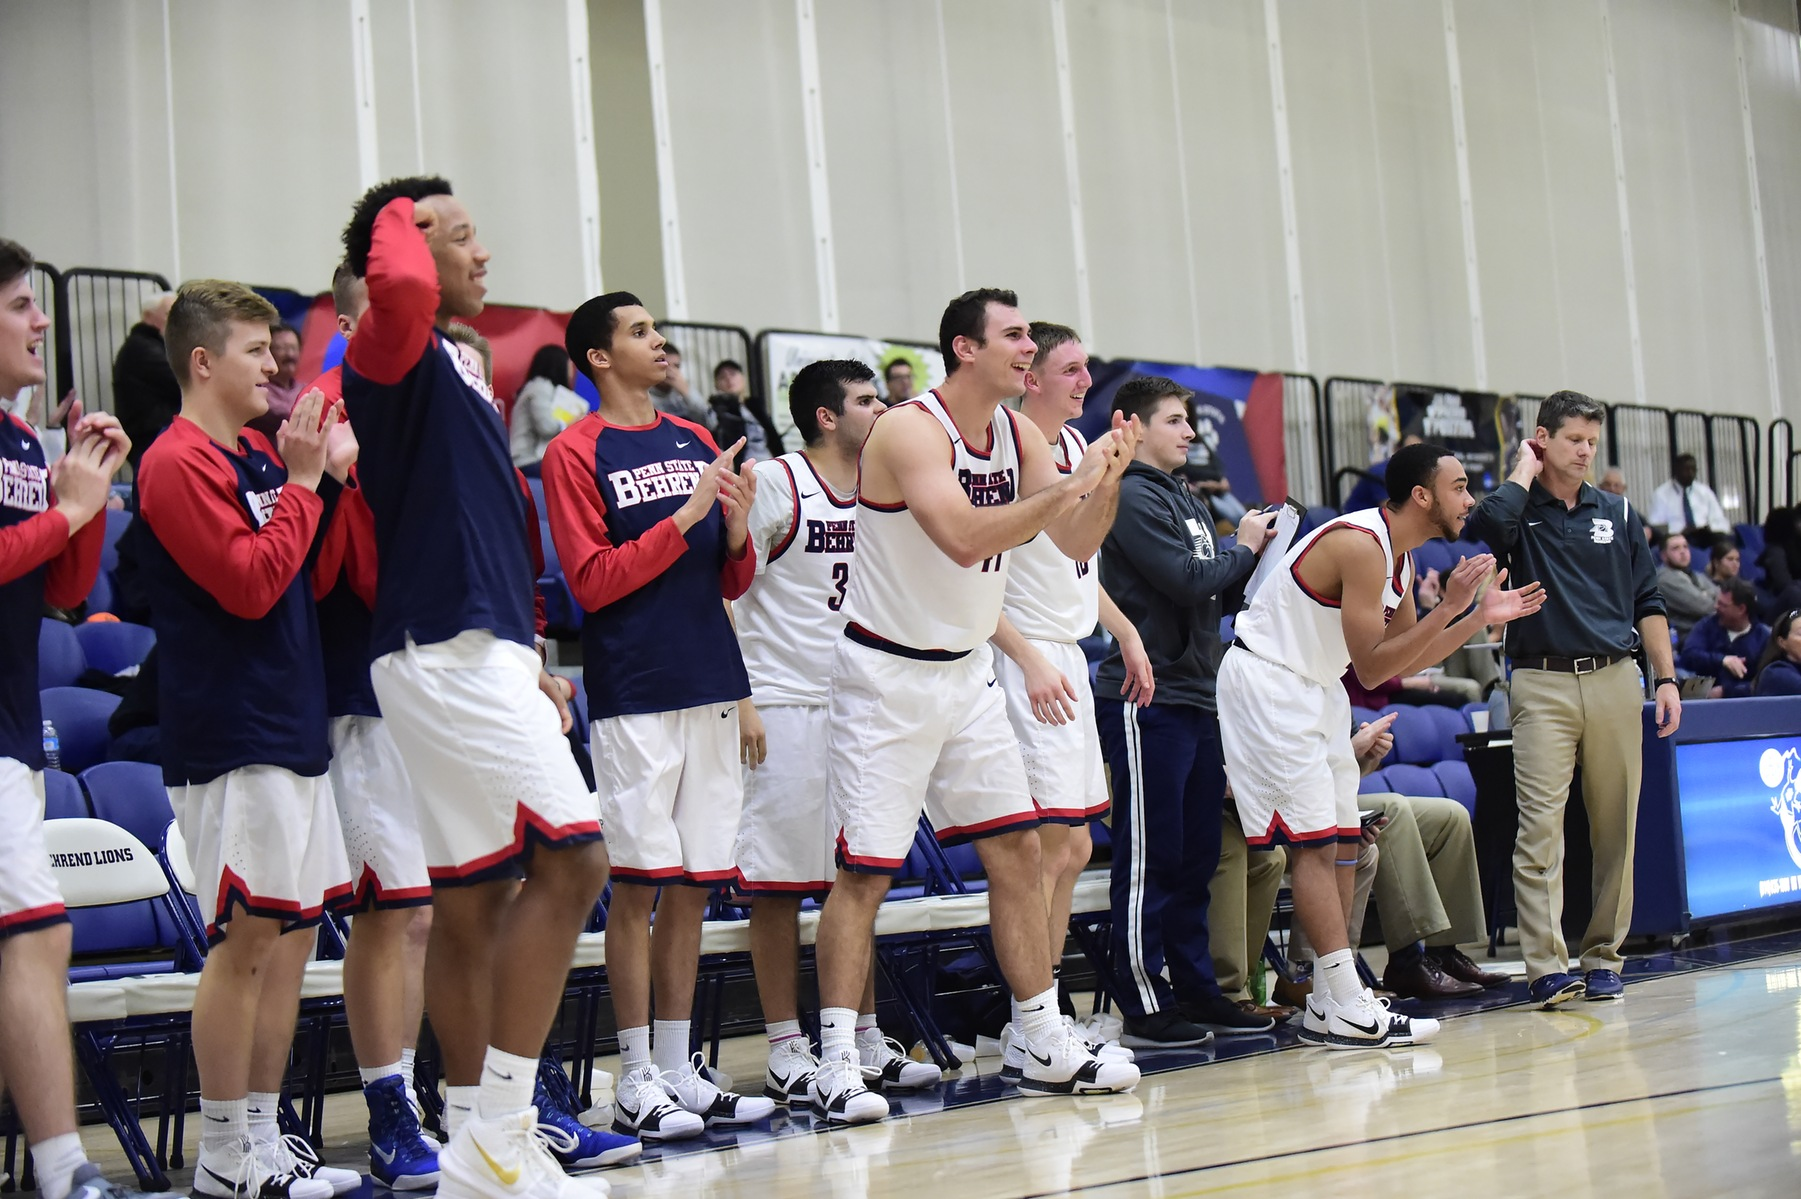 Men's Basketball Earns Best DIII Scoring Defense Title